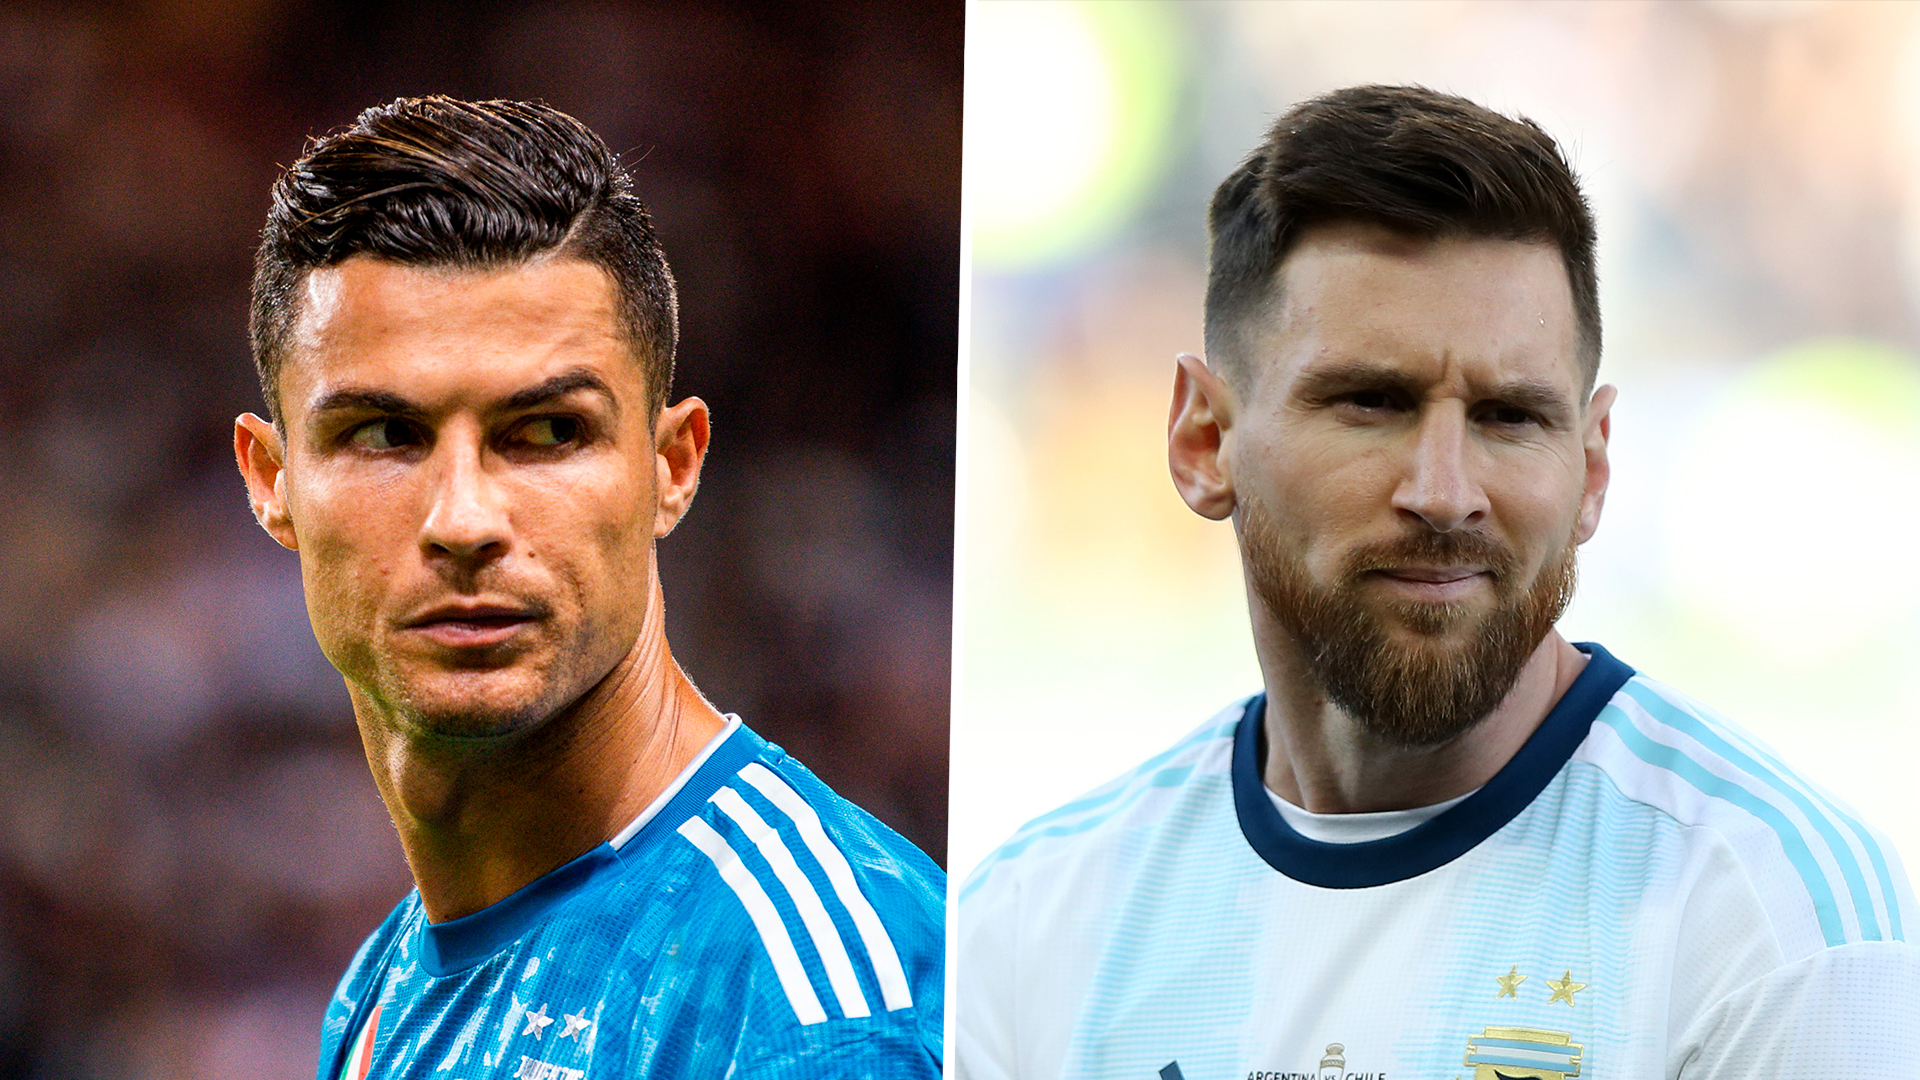 Messi and Ronaldo would struggle in this Manchester United team - Berbatov